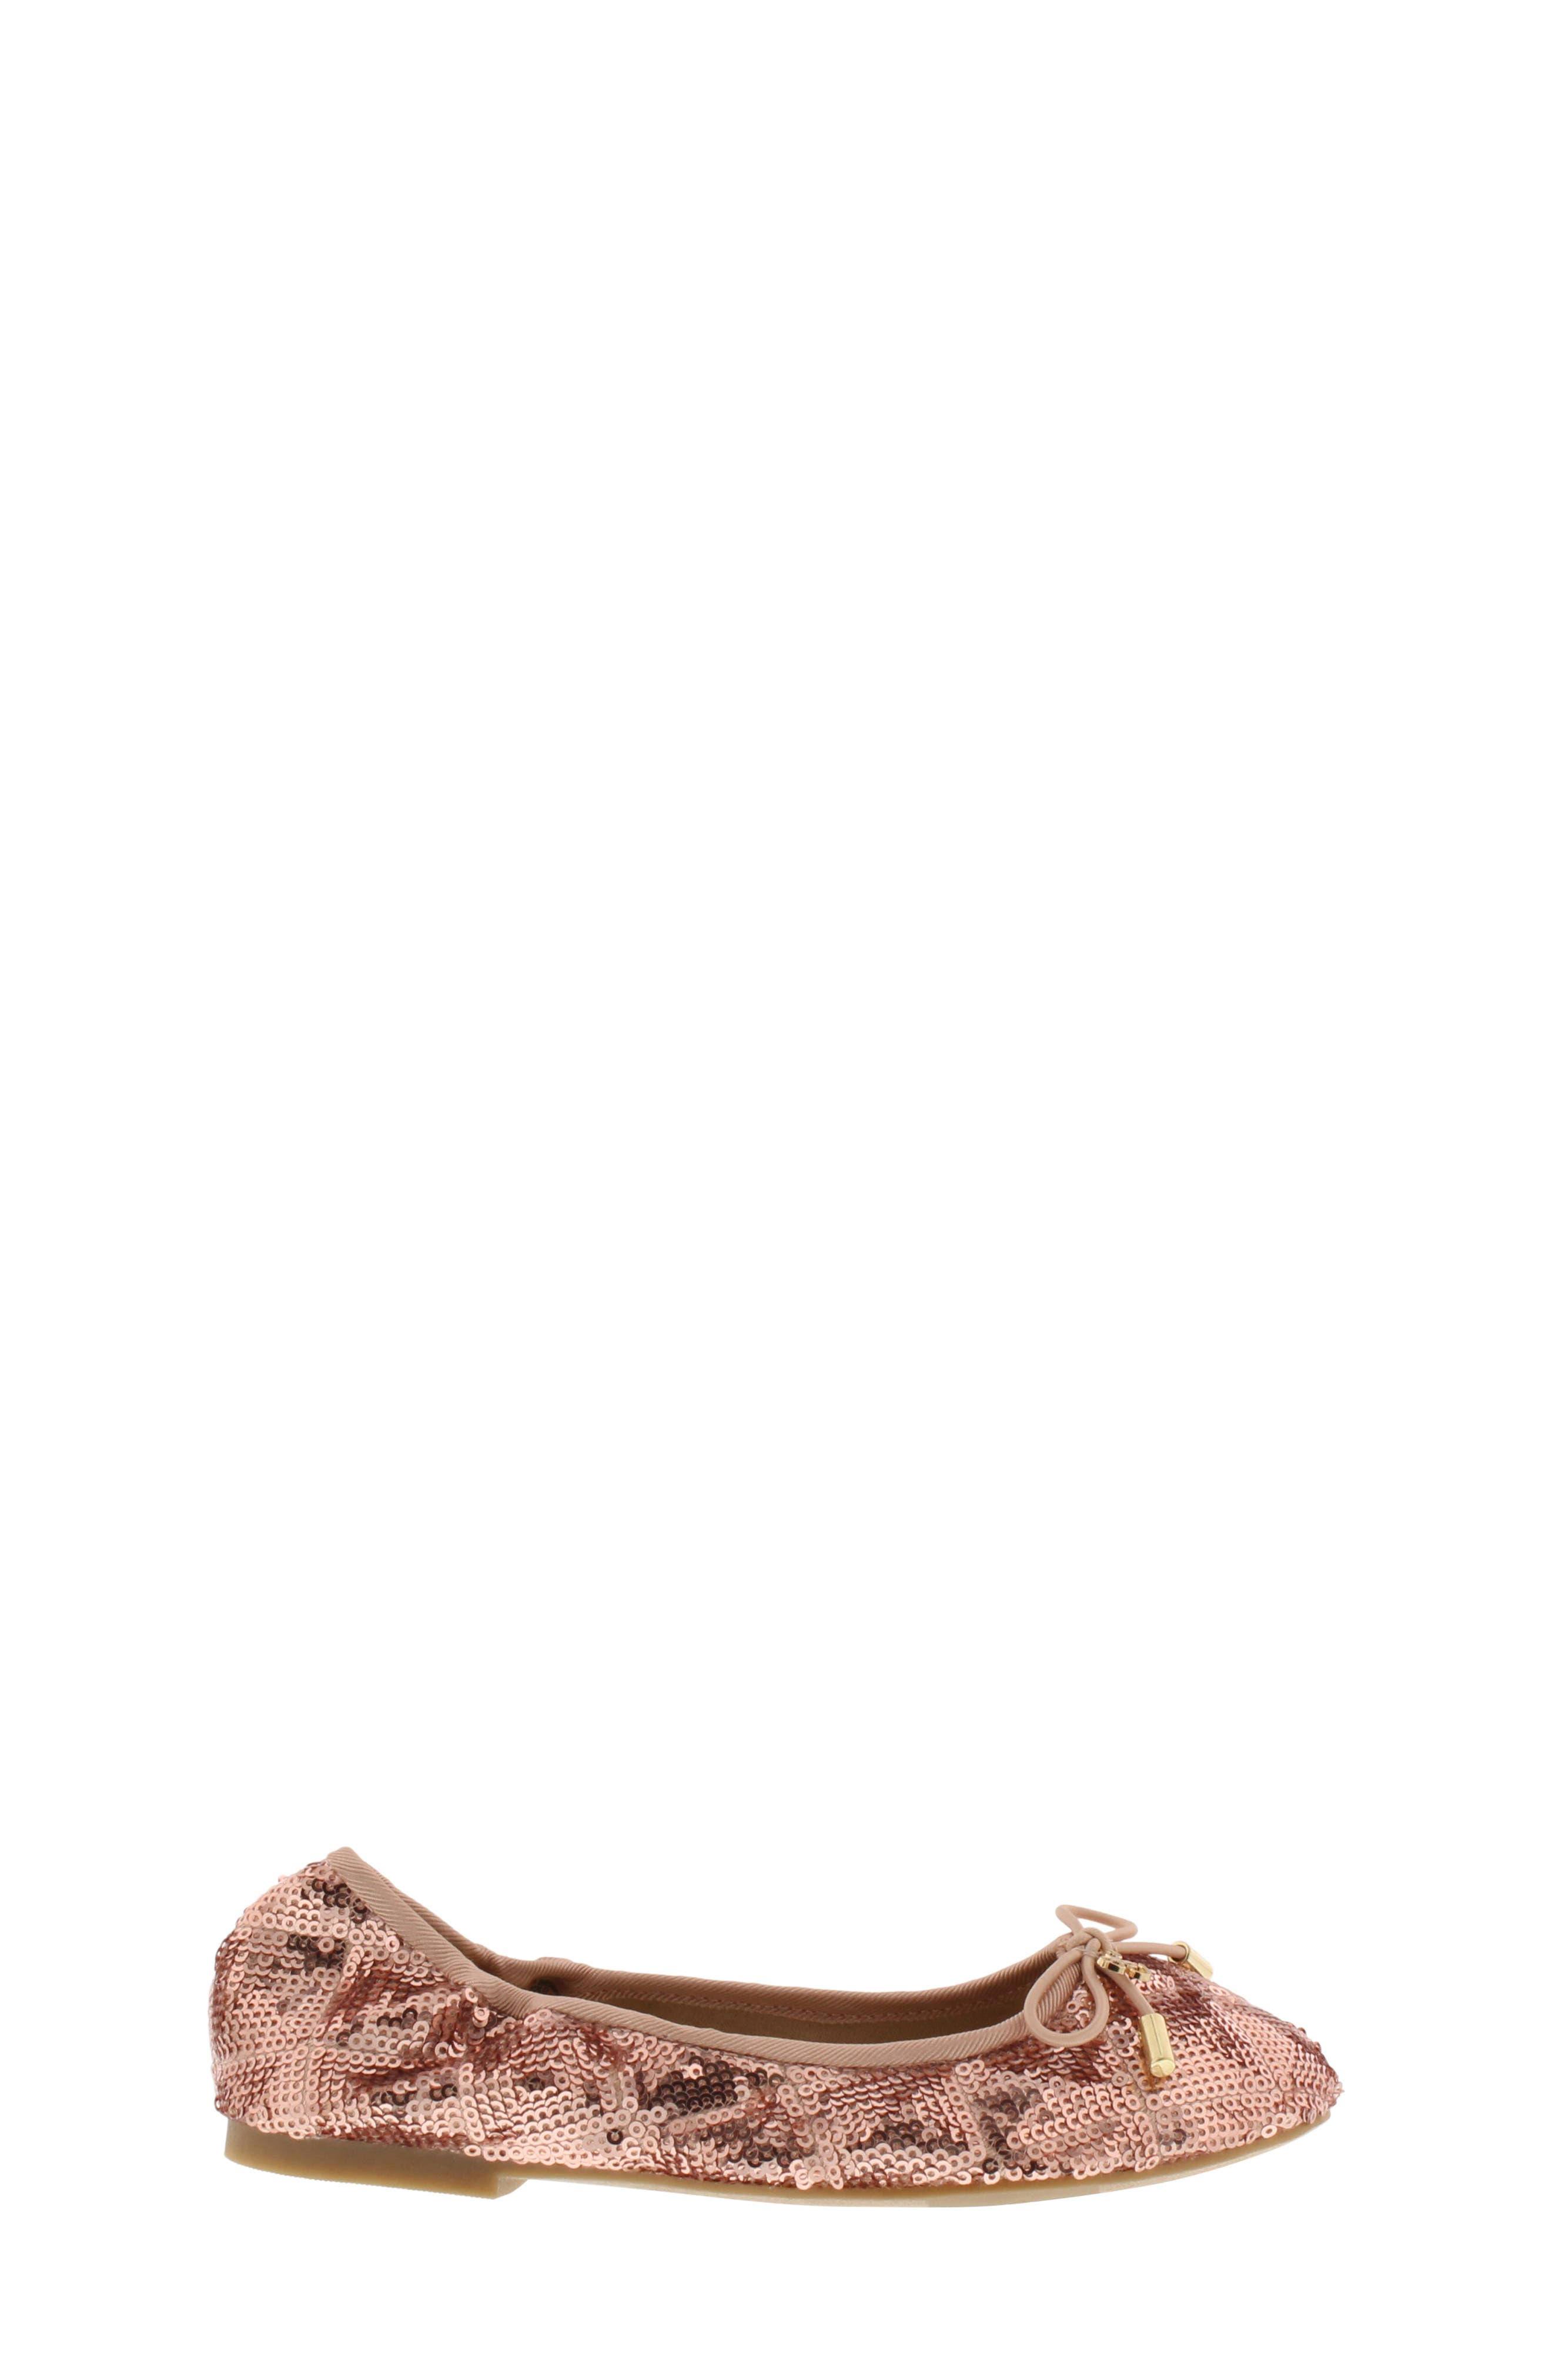 Felicia Sequin Ballet Flat,                             Alternate thumbnail 3, color,                             ROSE GOLD